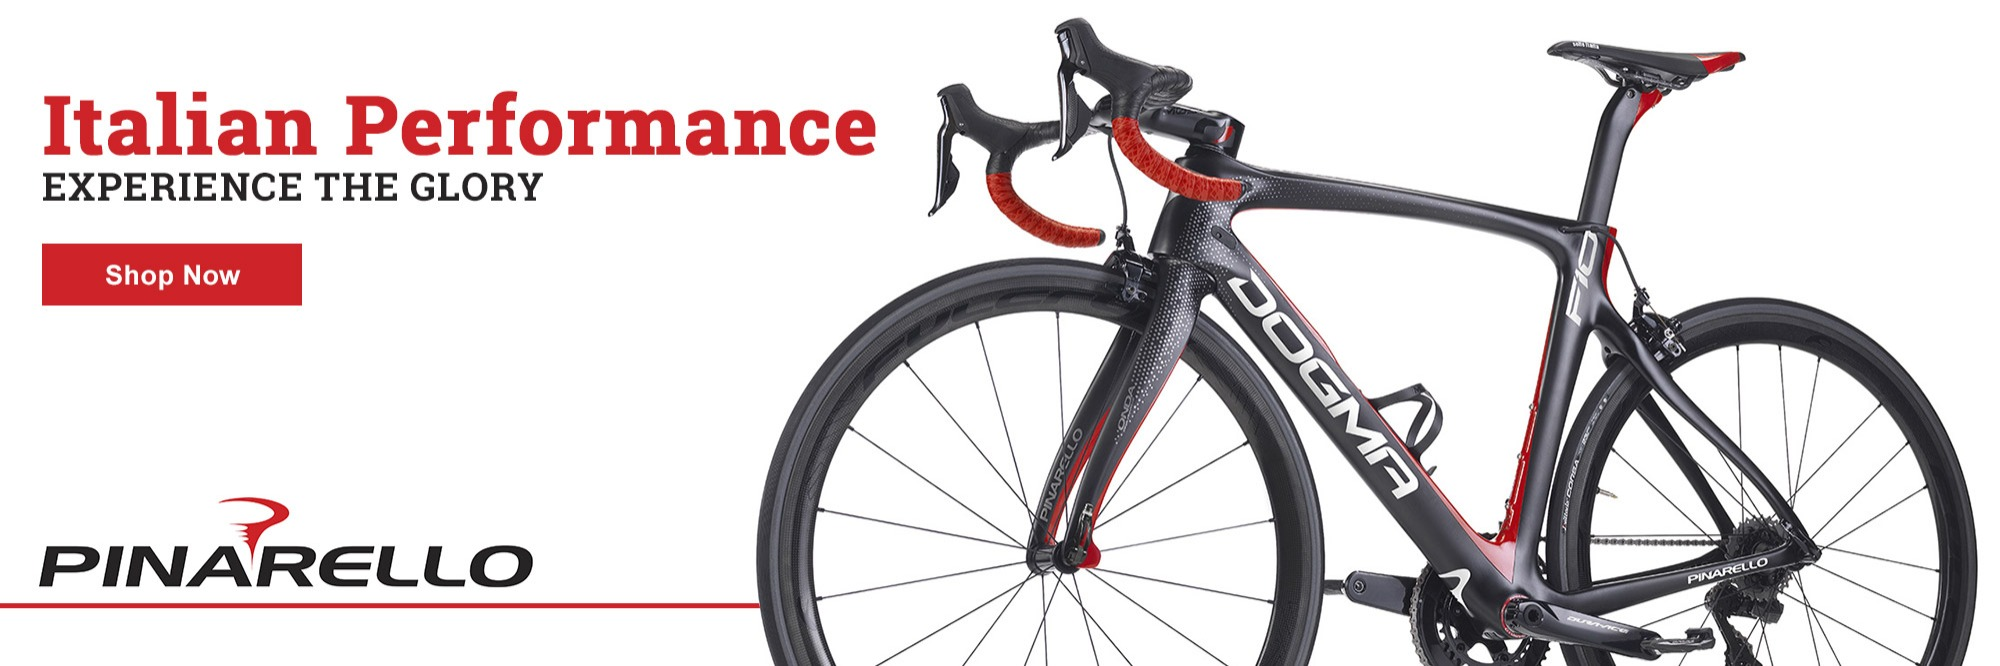 Pinarello - Italian Performance